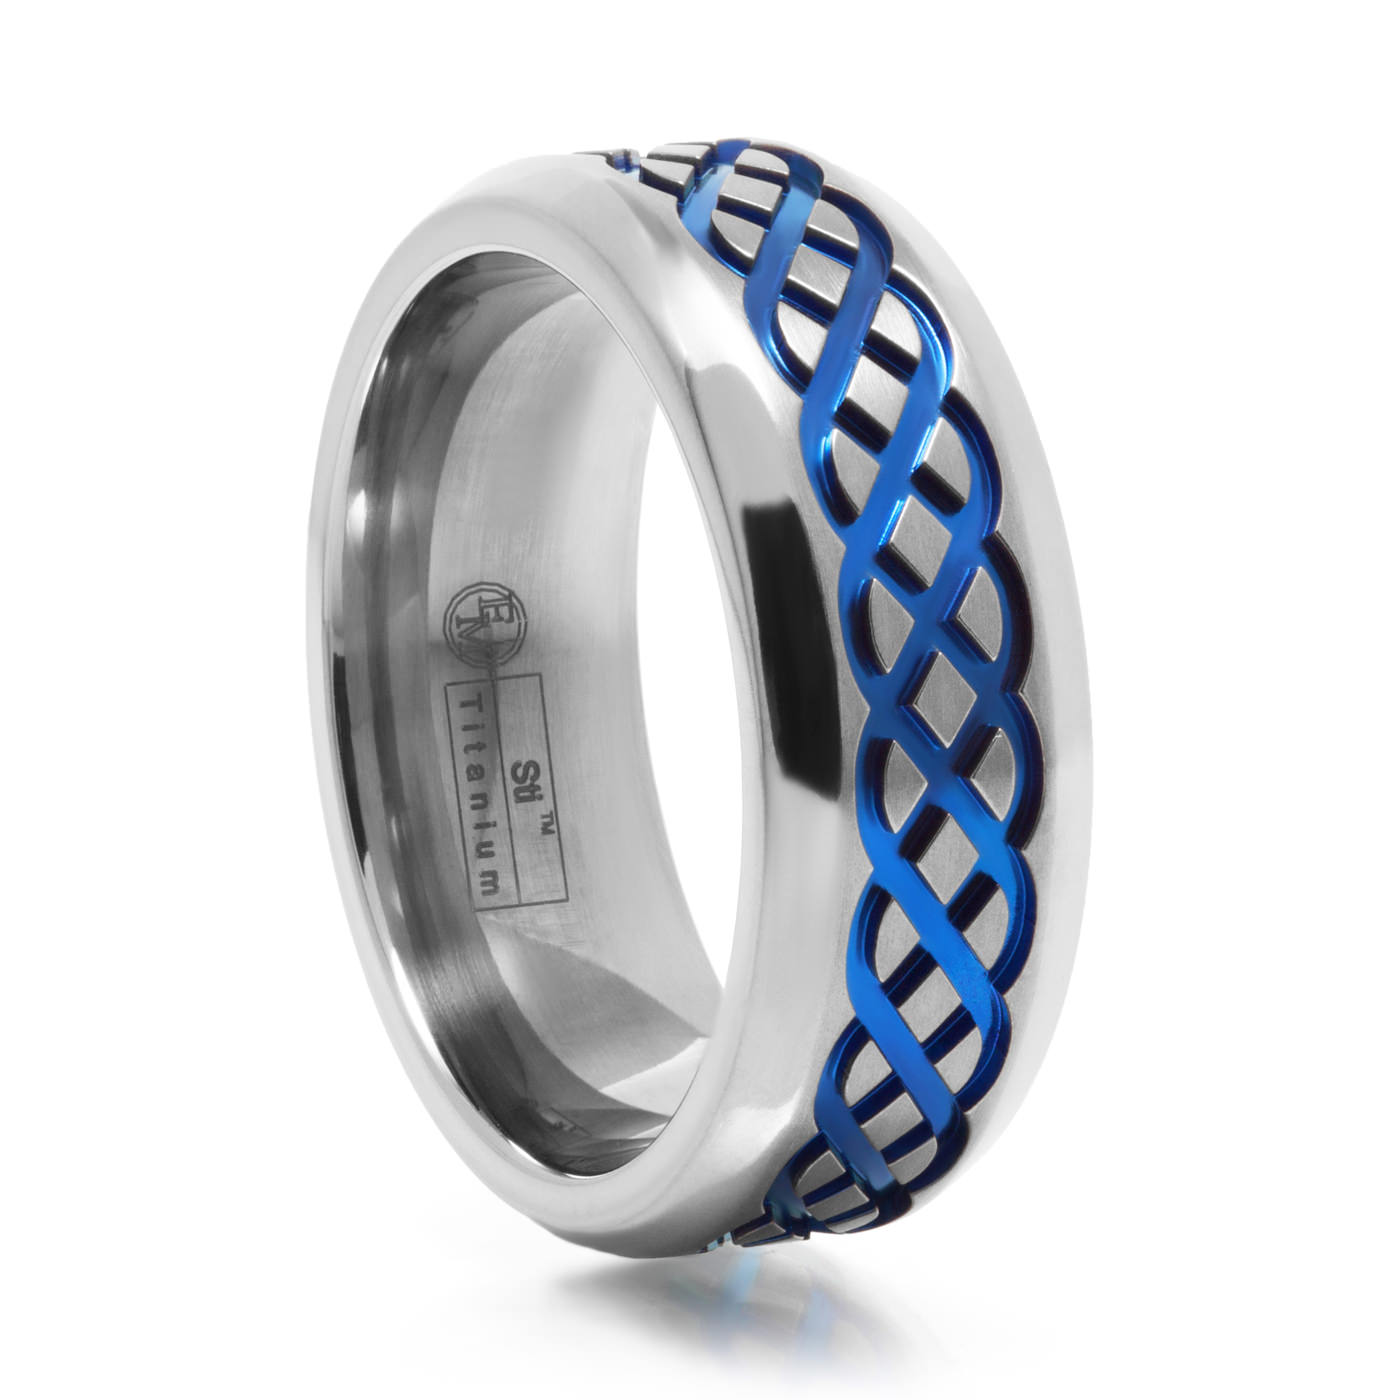 acrylic steel bands blue details ori rings wedding stainless ring